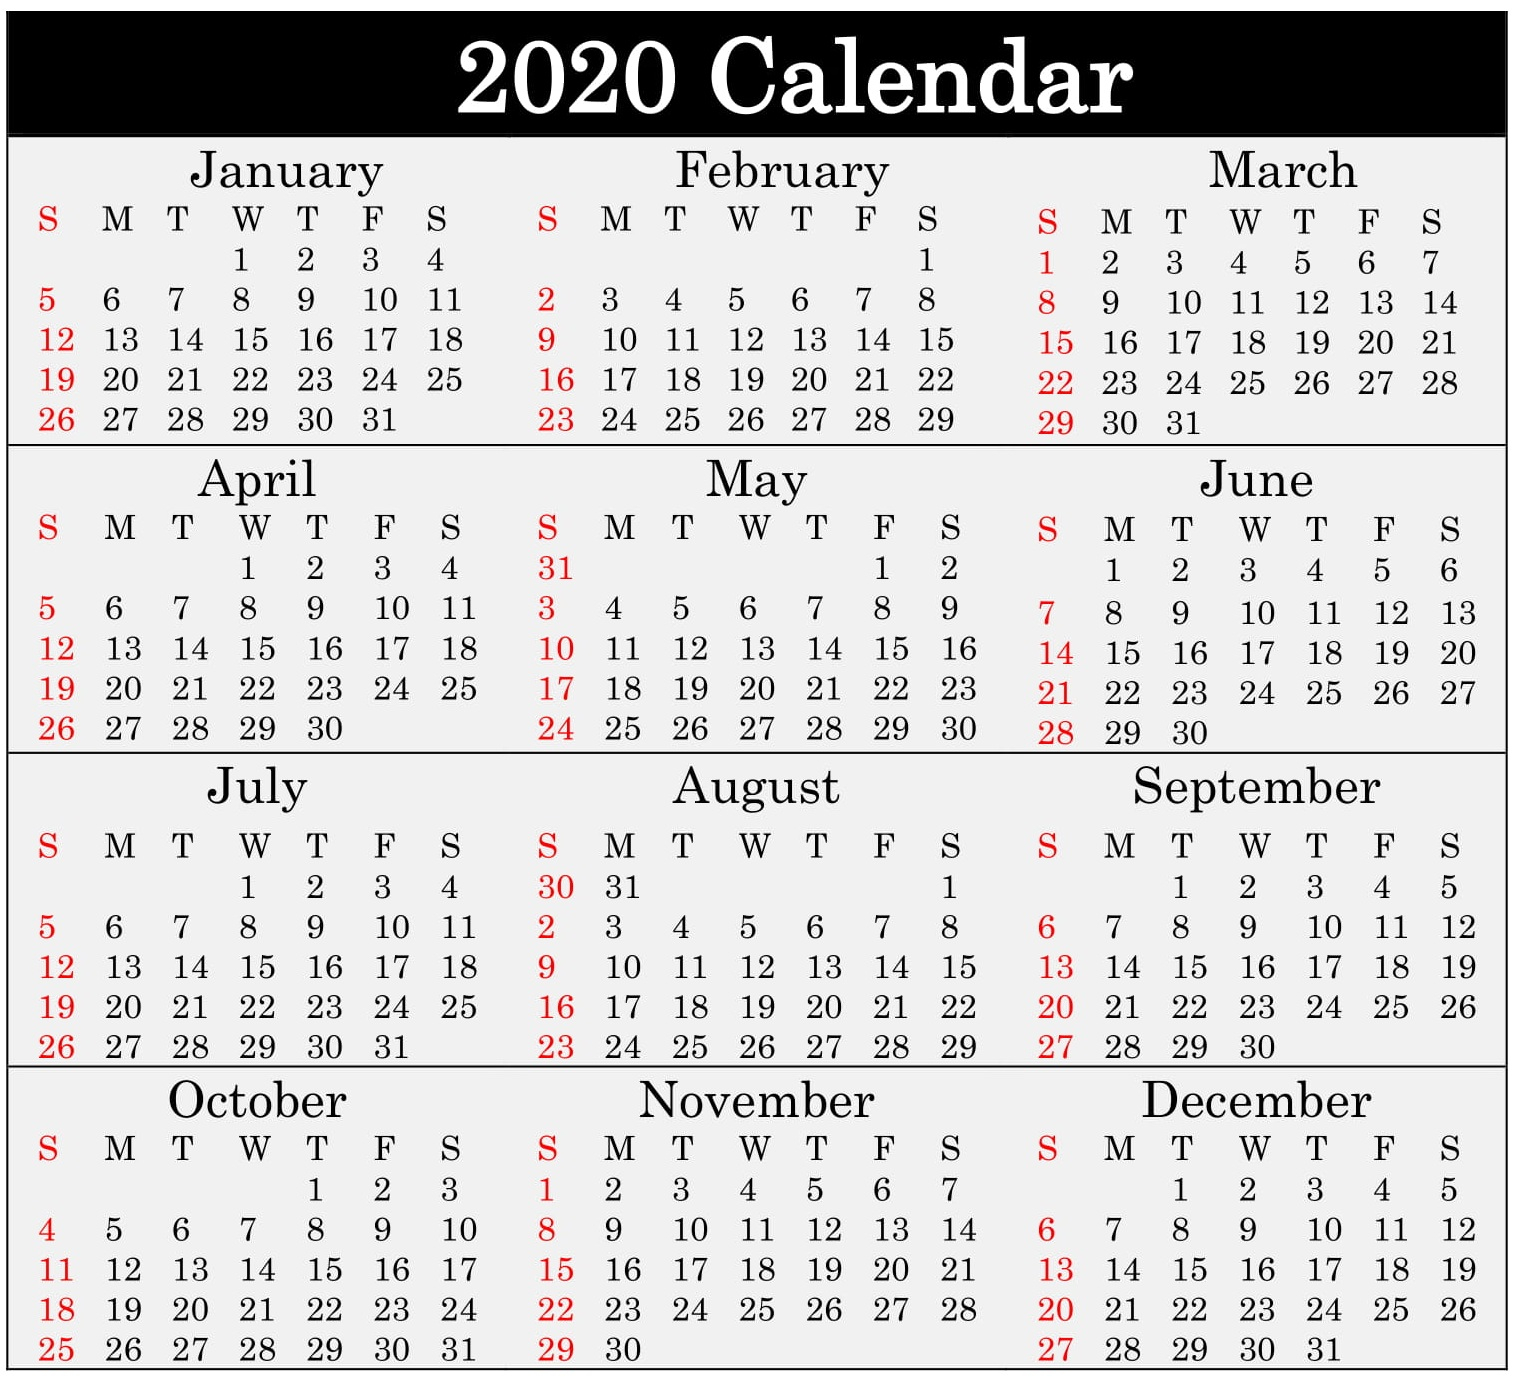 Free Printable 2020 Calendar Word, Pdf, Excel Document regarding Add Seasons To Google Calendar